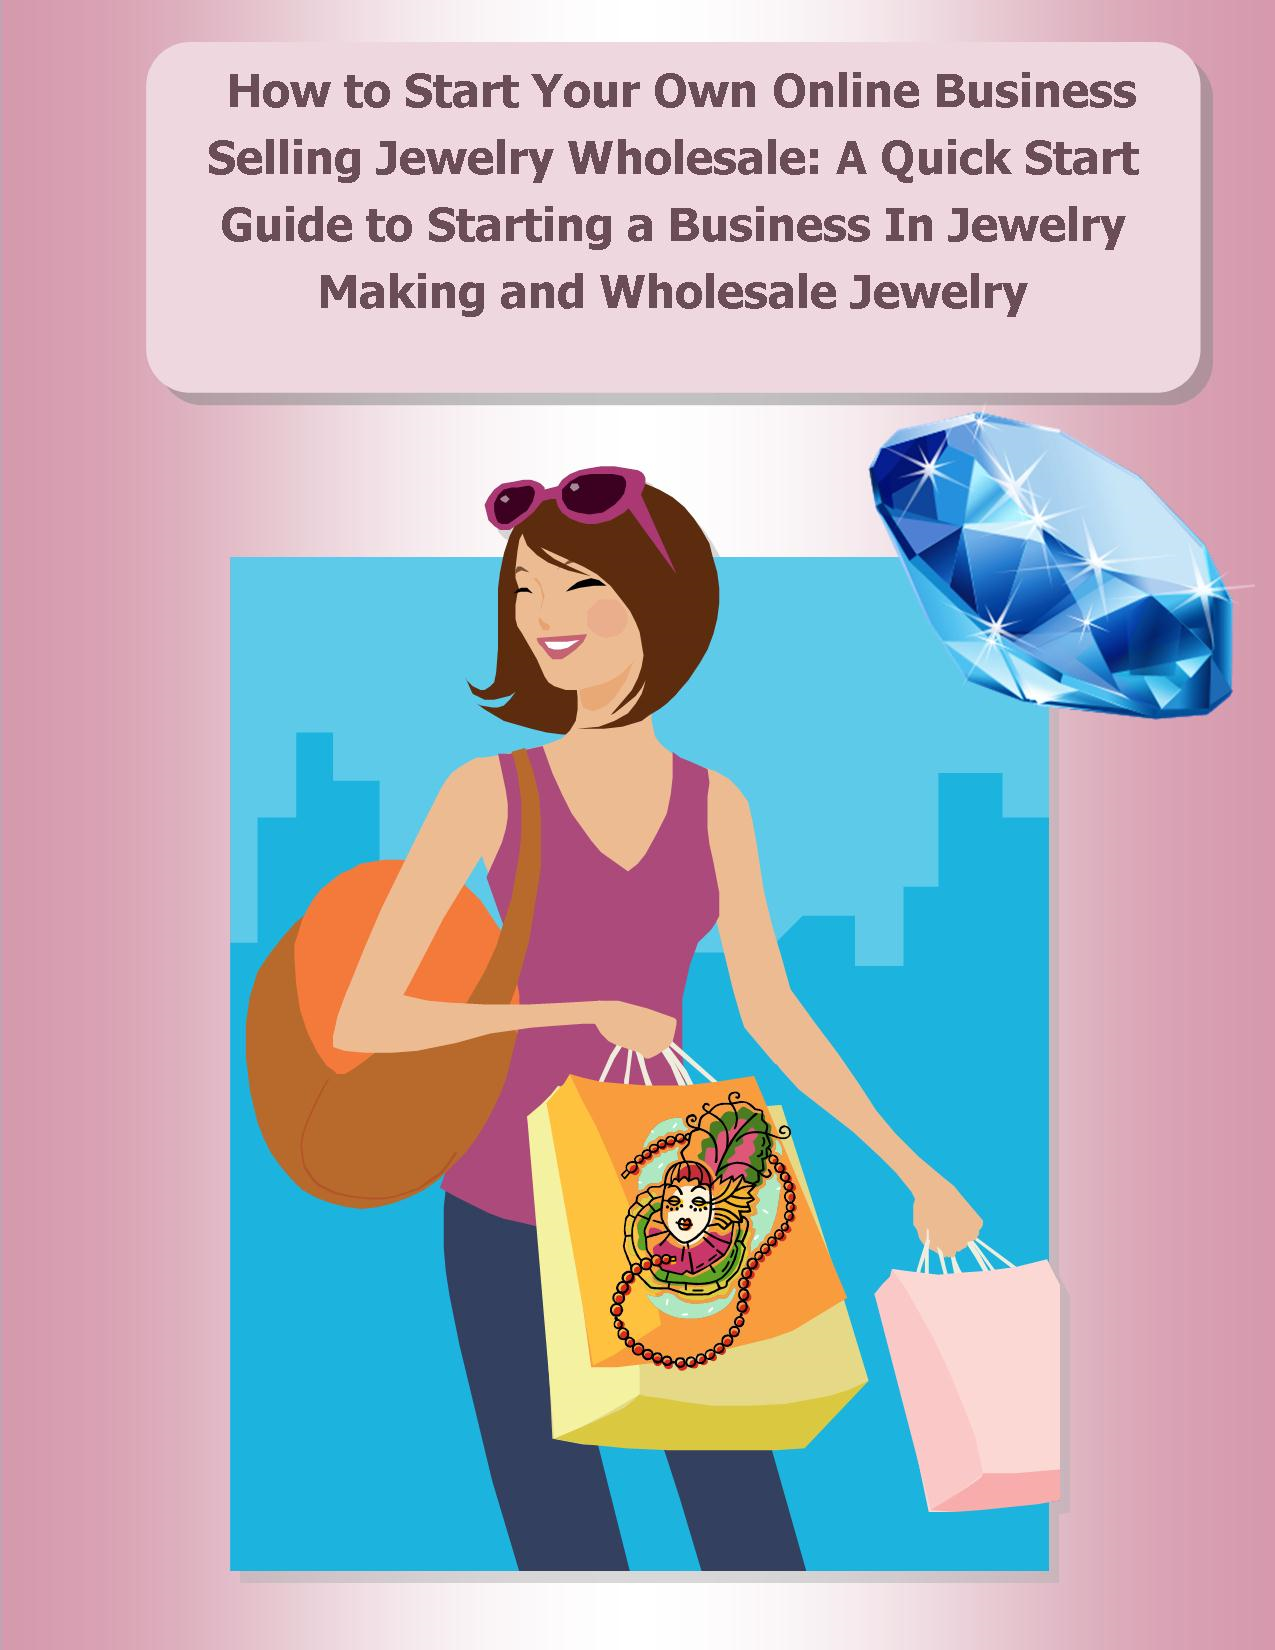 How to Start Your Own Online Business Selling Jewelry Wholesale: A Quick Start Guide Starting a Business In Jewelry Making and Wholesale Jewelry